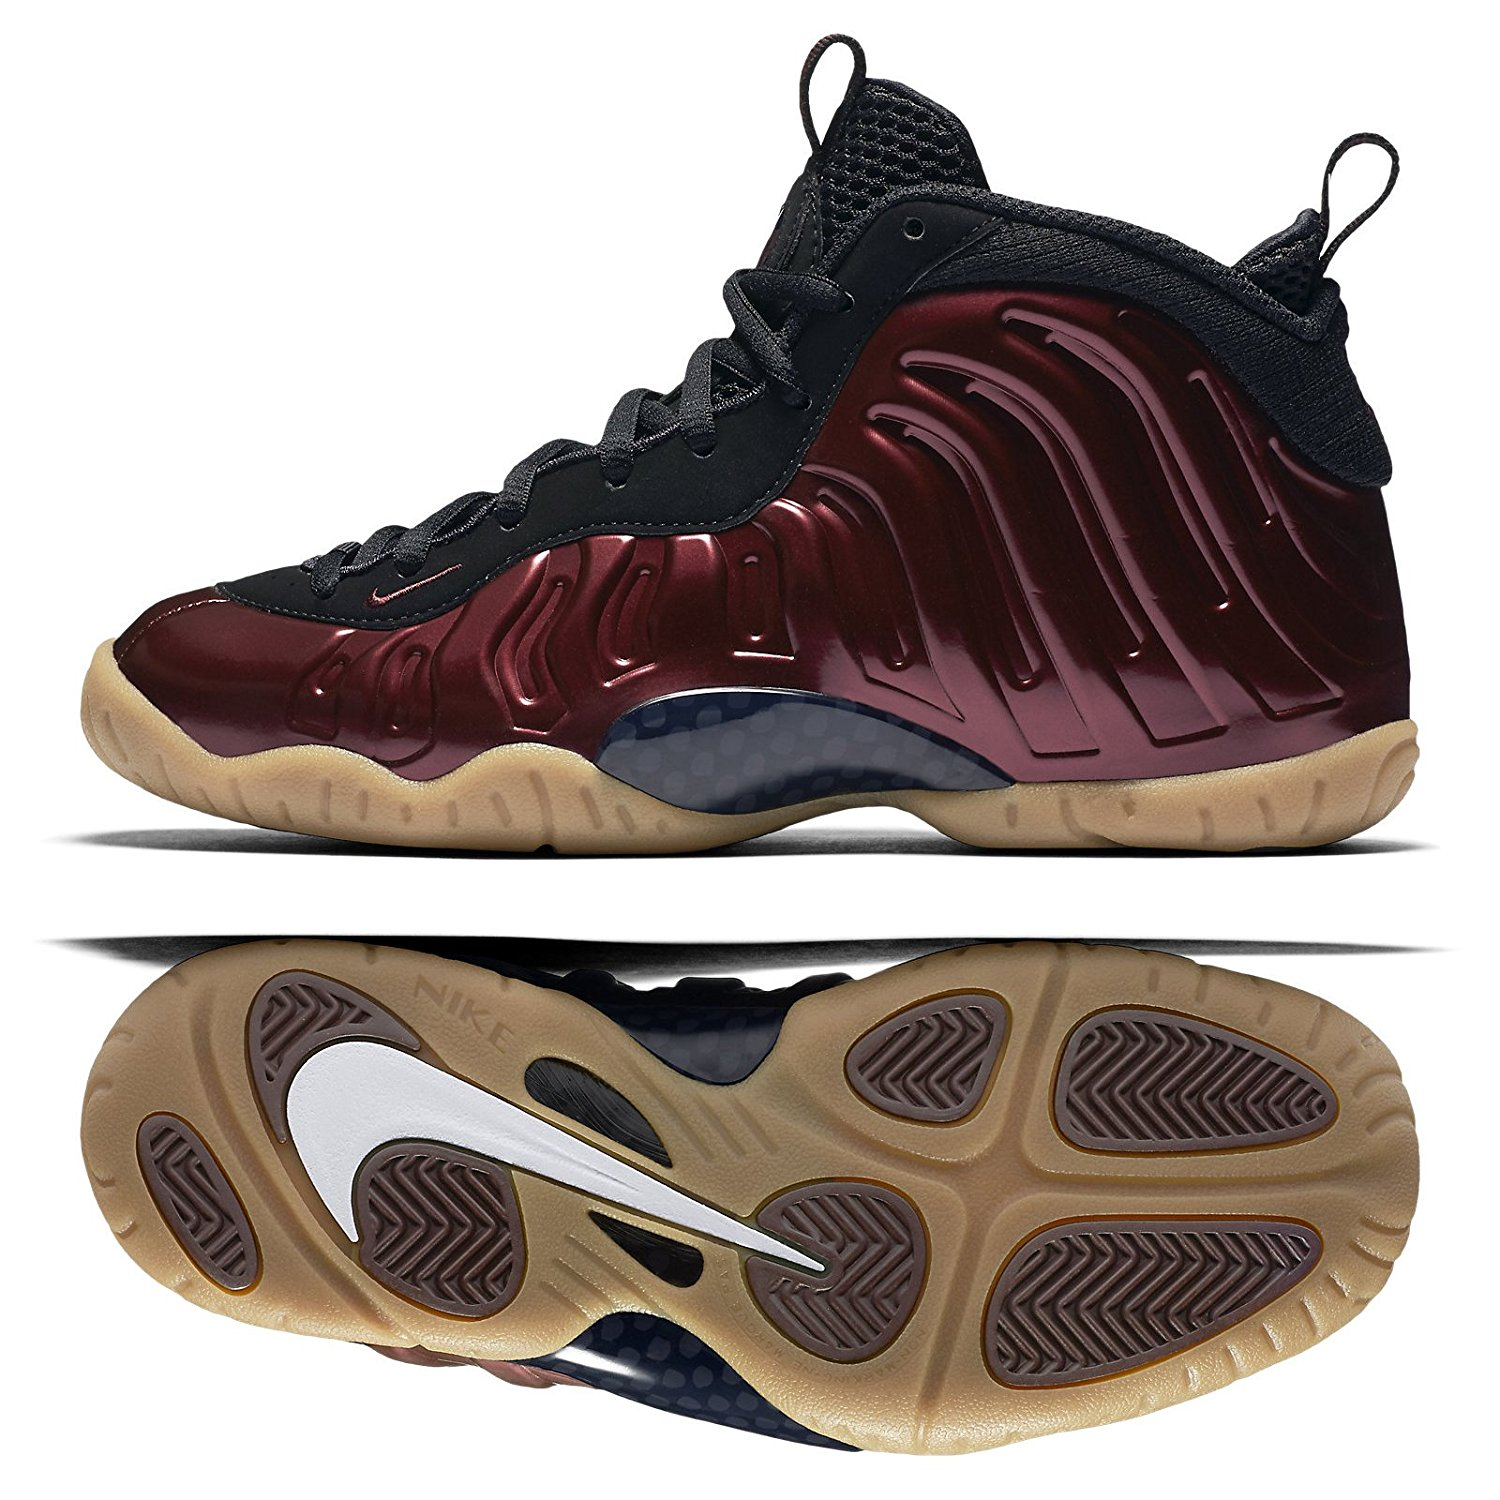 6c40ac536eef4 Get Quotations · Nike Little Posite Pro (GS) (NIGHT MAROON